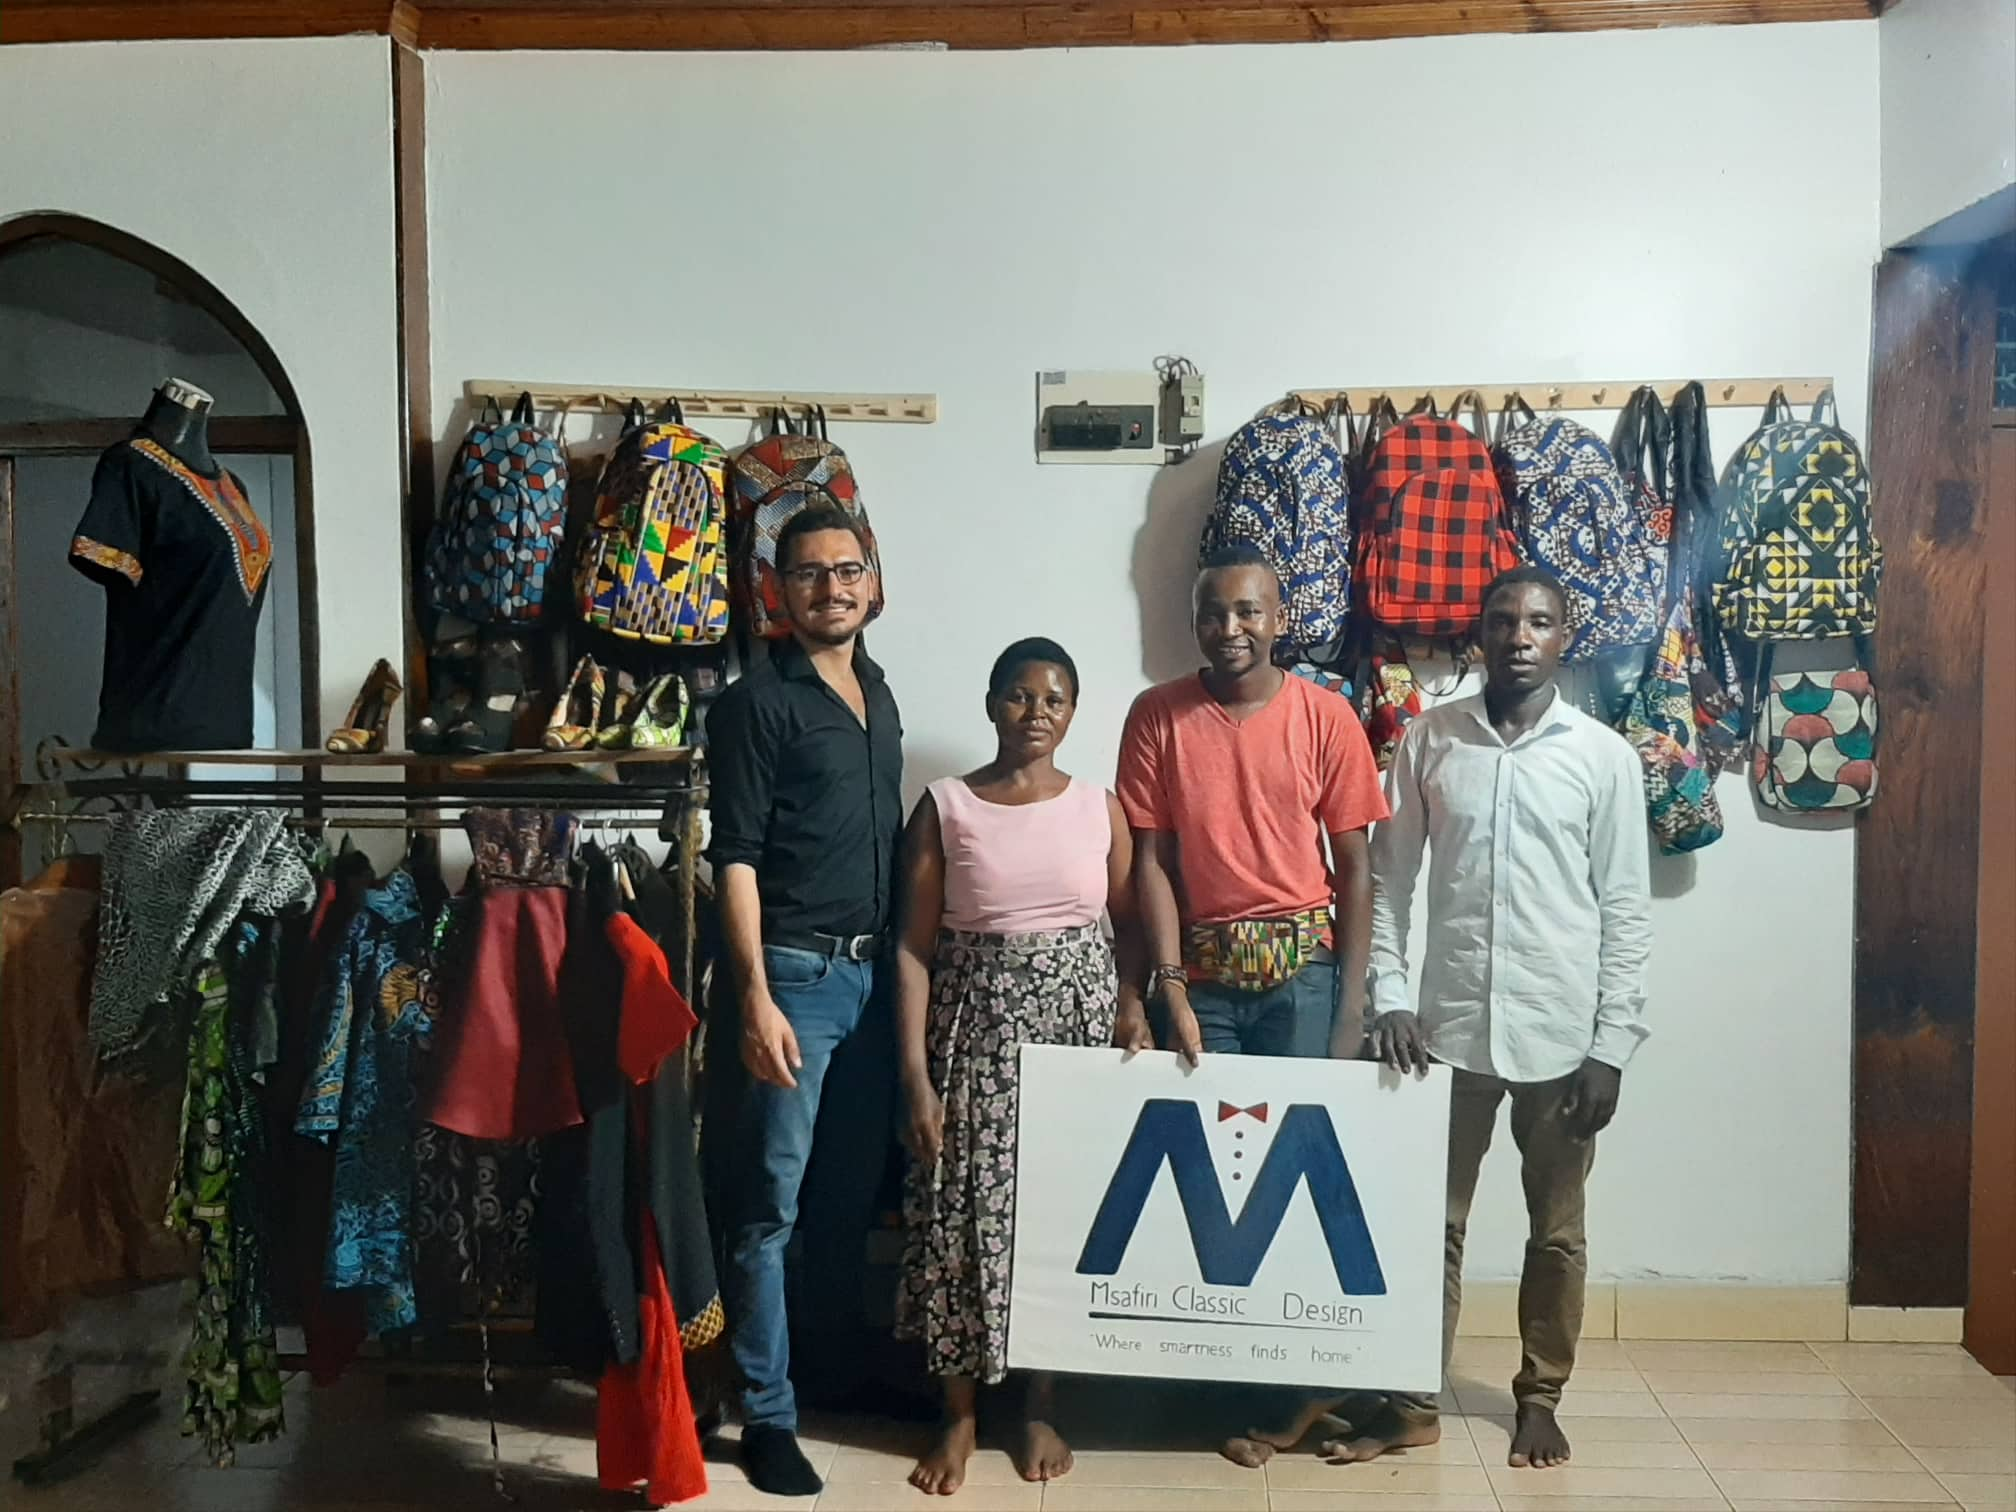 Tanzania Textile Case Study Africa Kitenge Fabric And Clothing Export